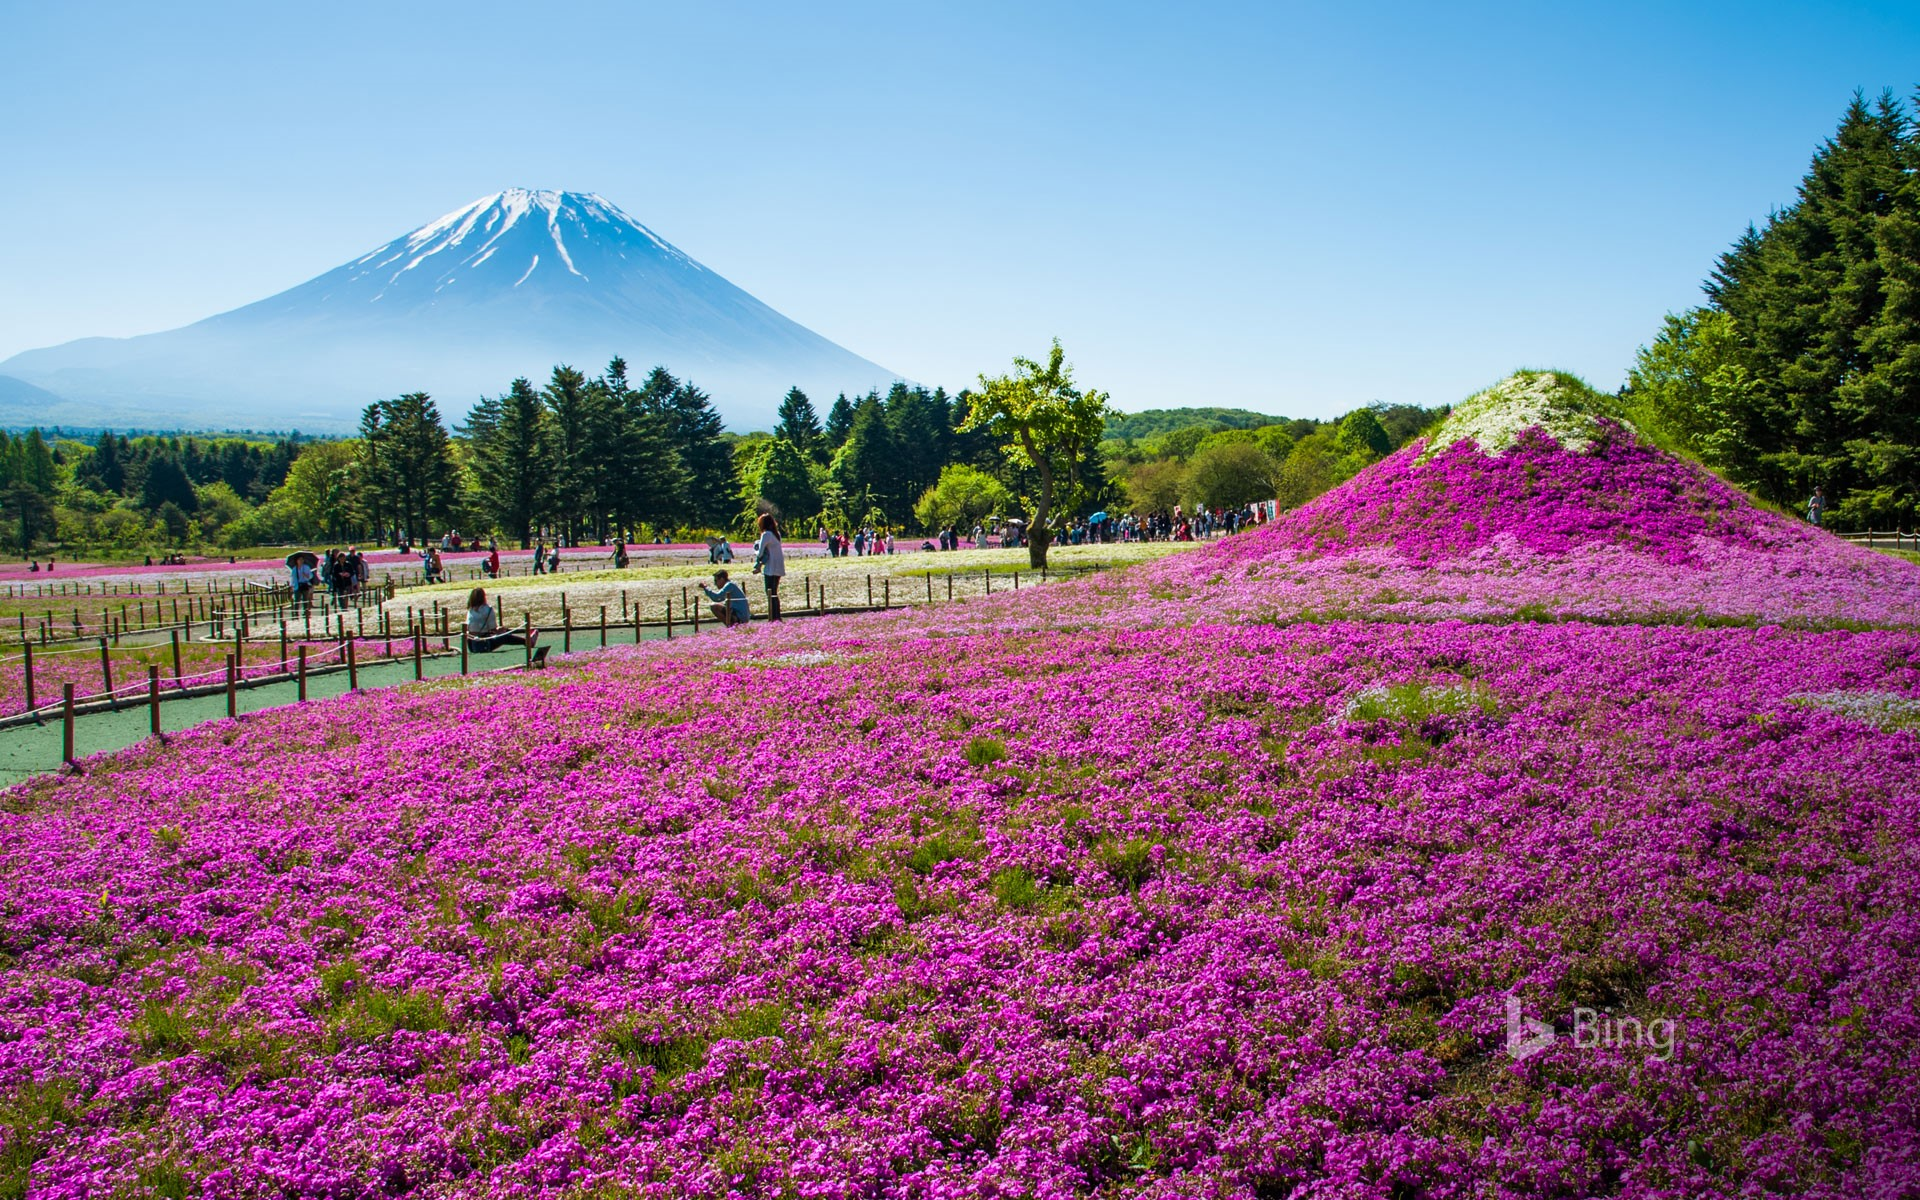 Mount Fuji with meadow of Phlox subulata flowers in Yamanashi, Japan